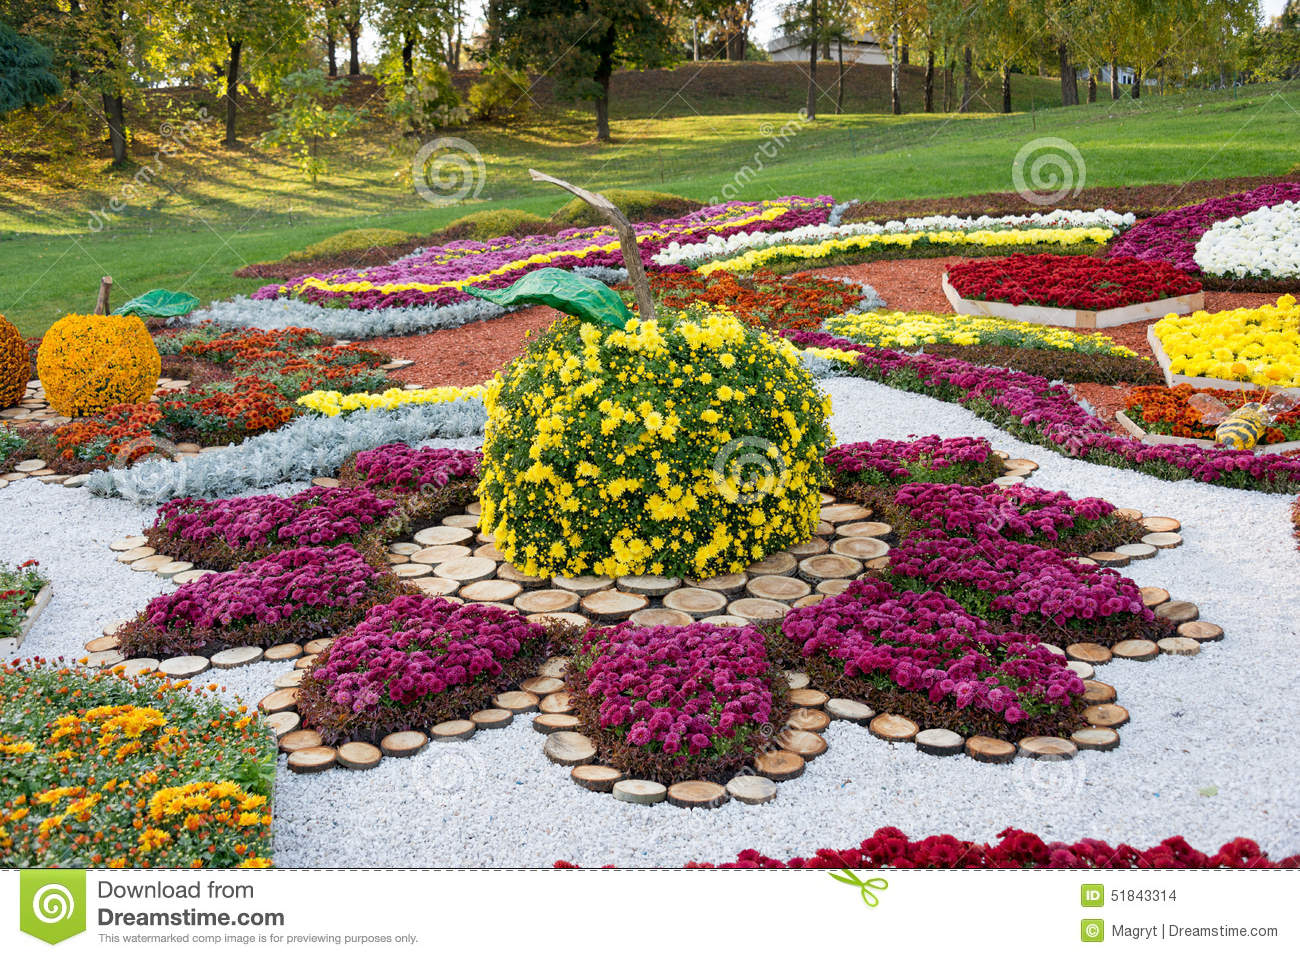 Flower bed in a shape of an apple with colorful for Flower bed shapes designs